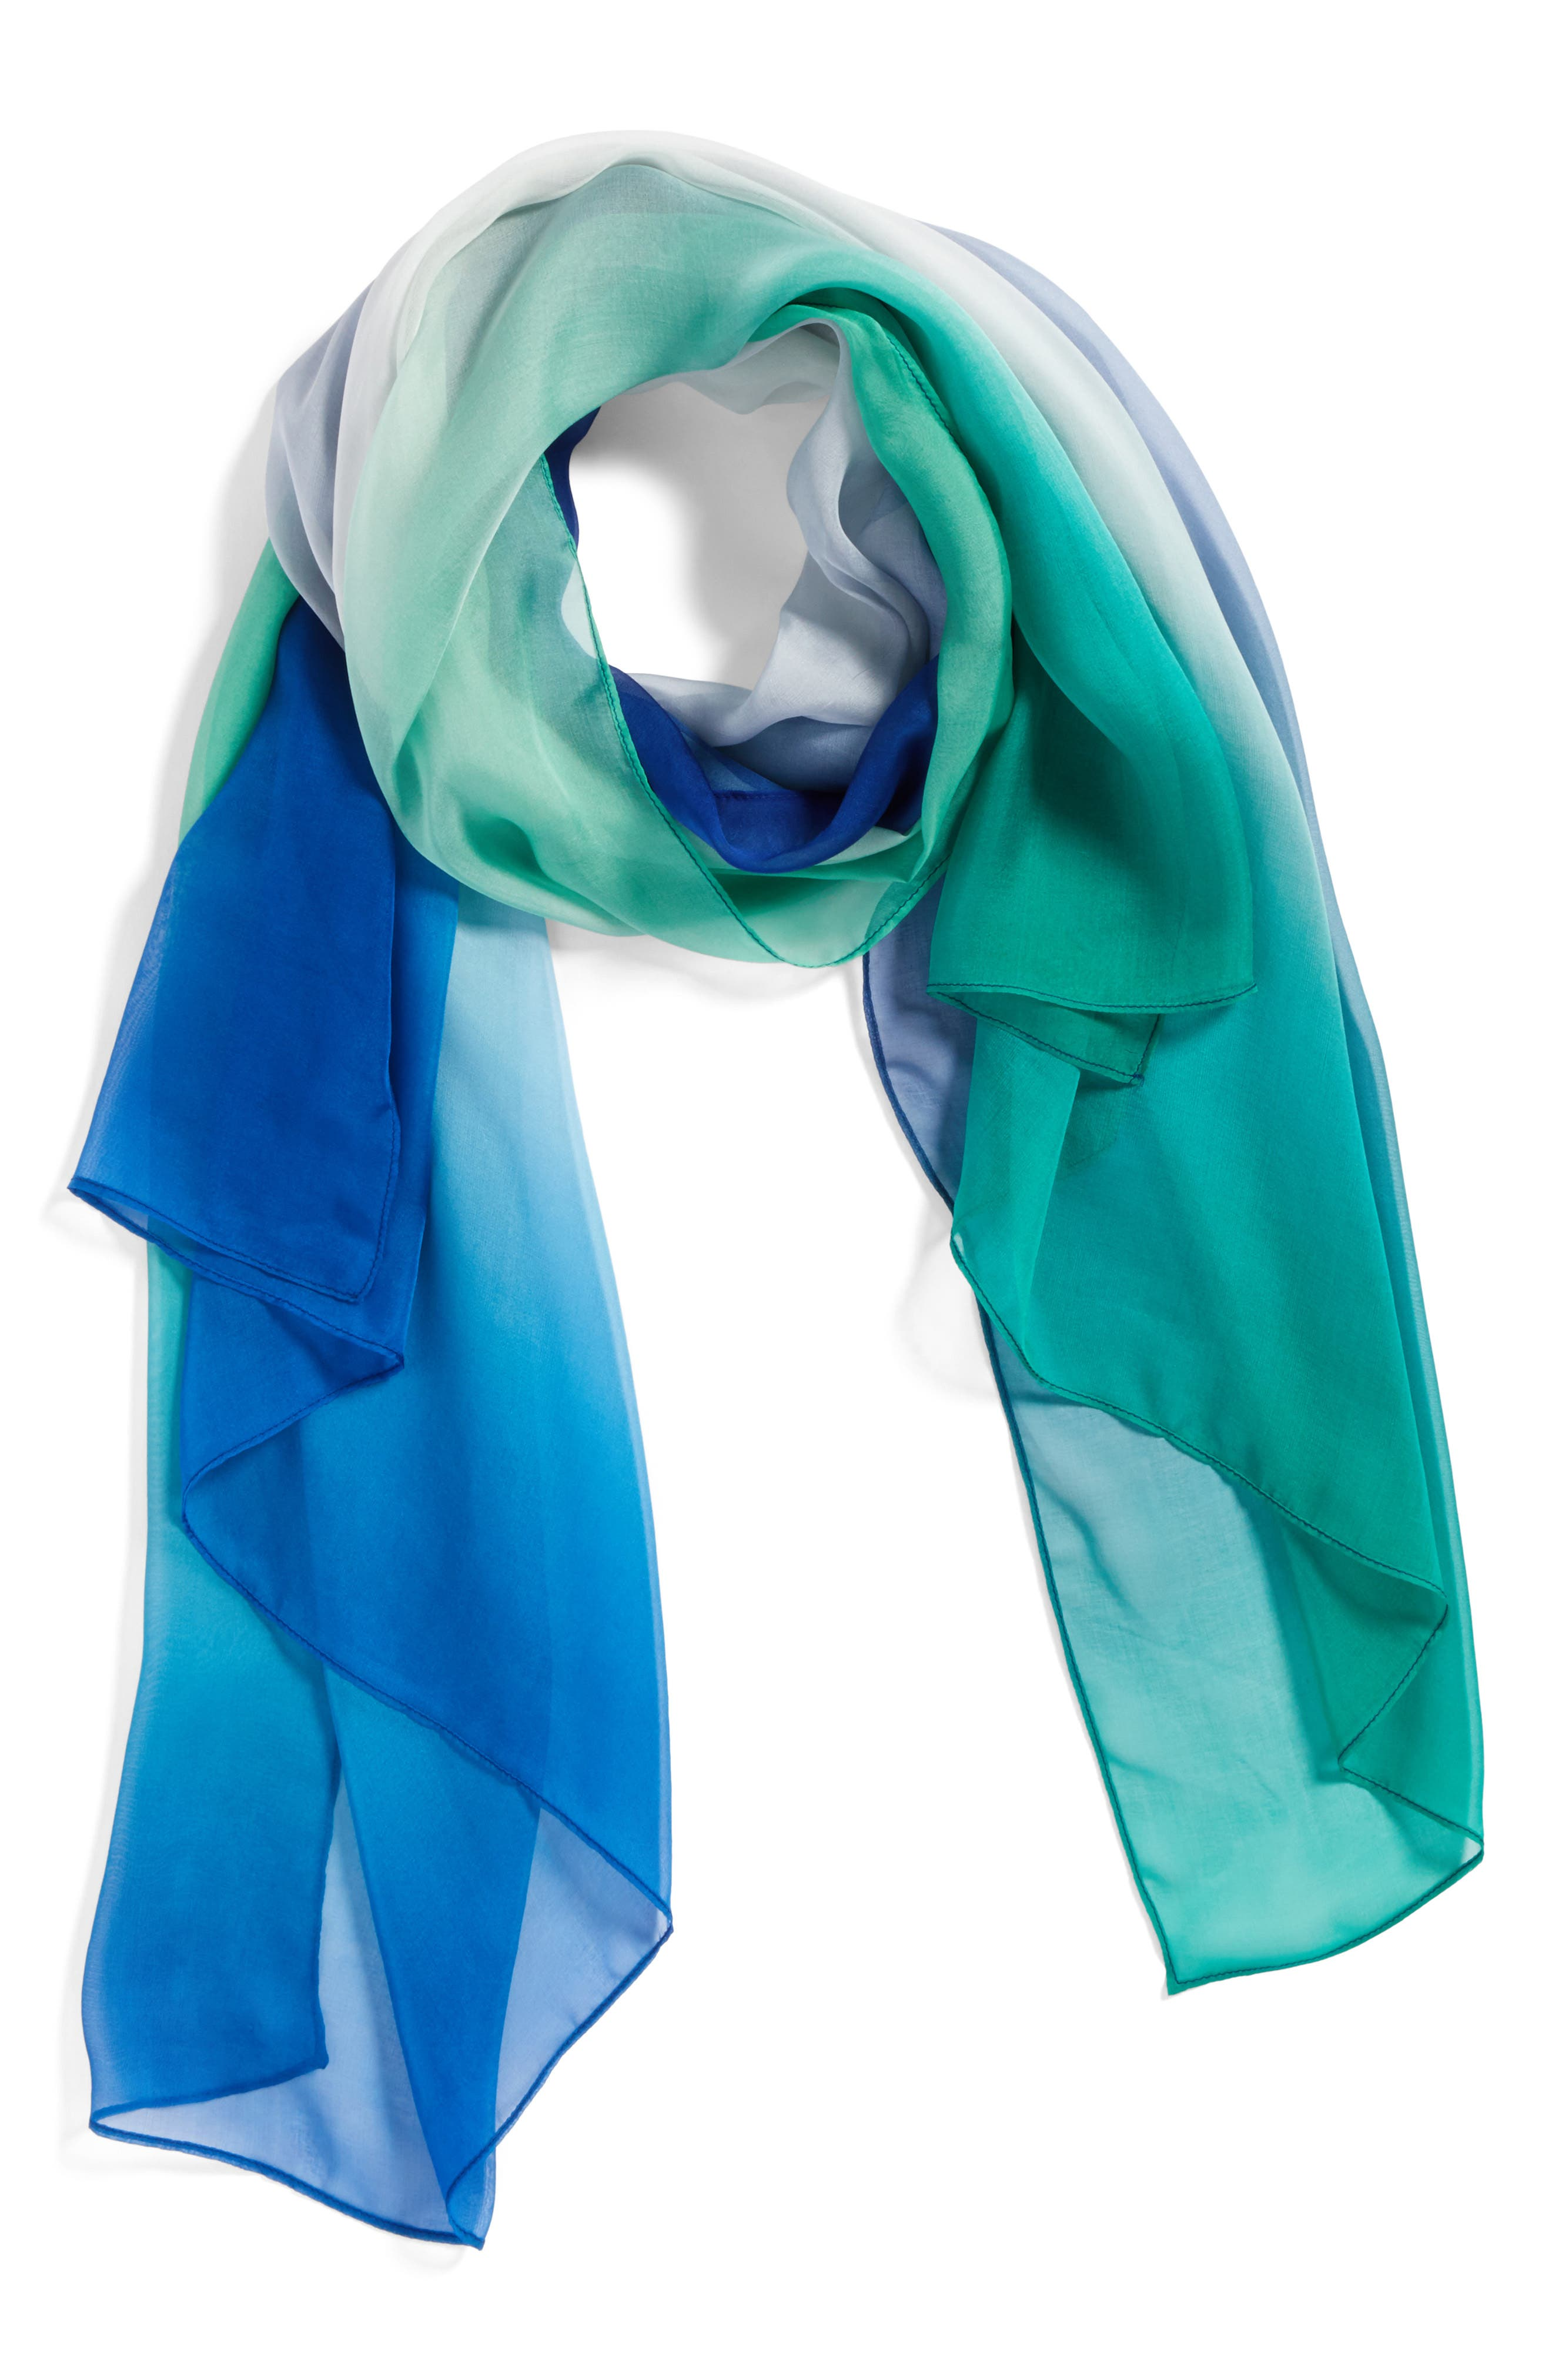 Silk Chiffon Oblong Scarf,                             Alternate thumbnail 2, color,                             Teal Ombre Whisper